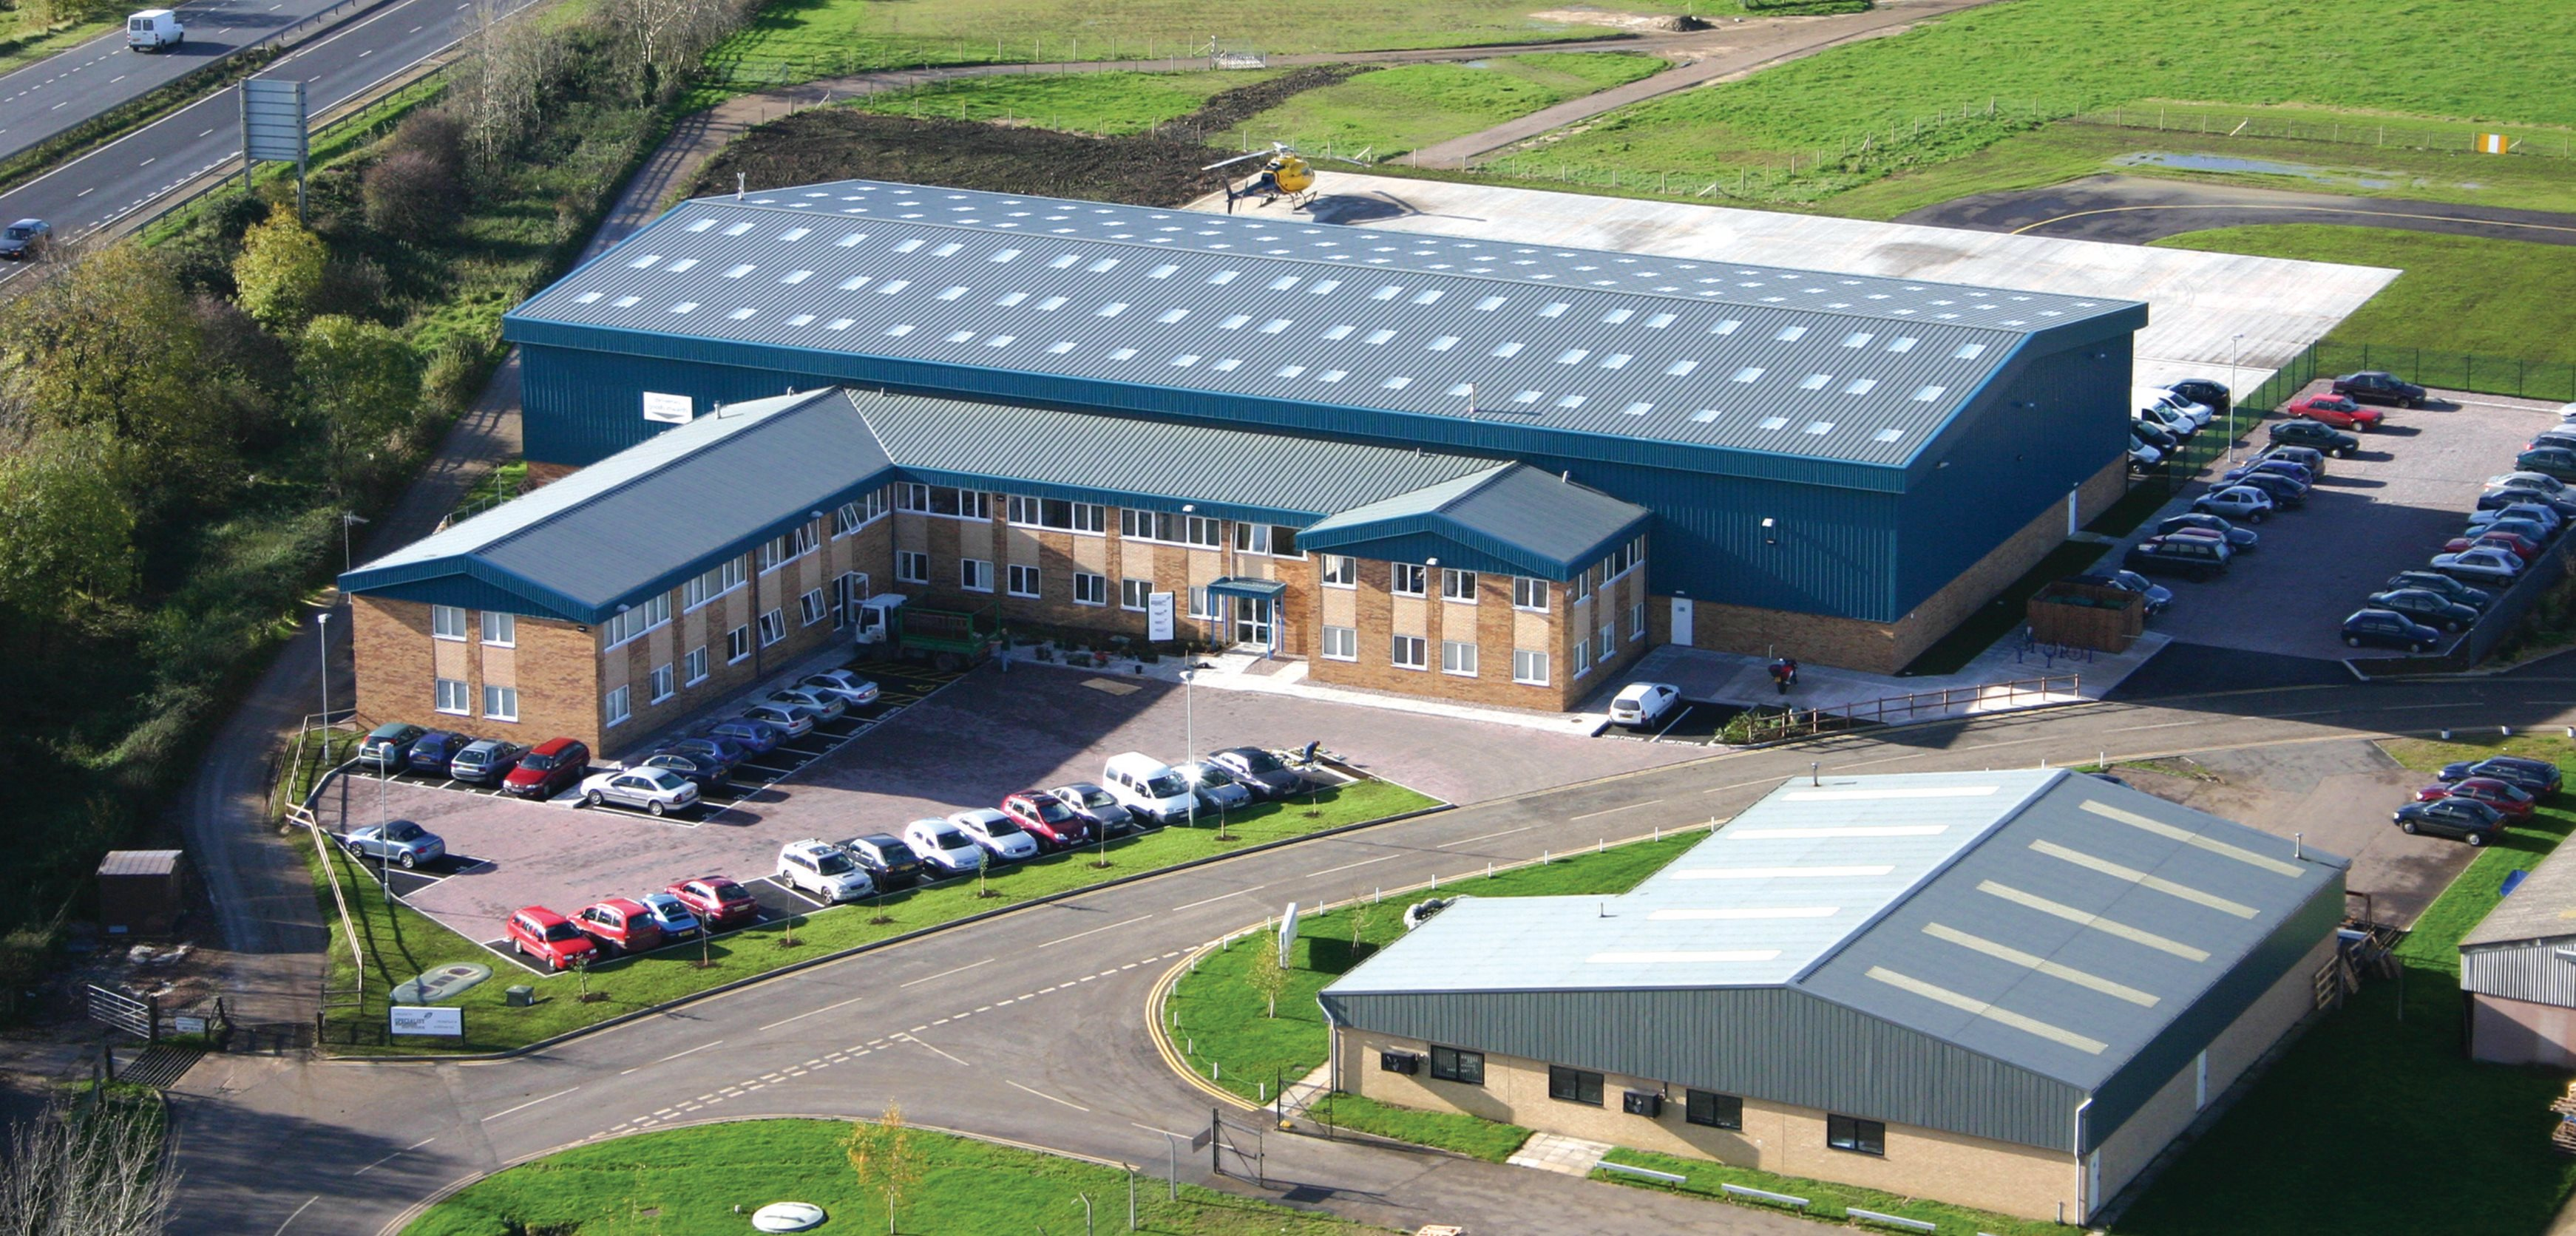 We moved to a brand new purpose built hangar and office building at Staverton Airport, Gloucestershire, UK.